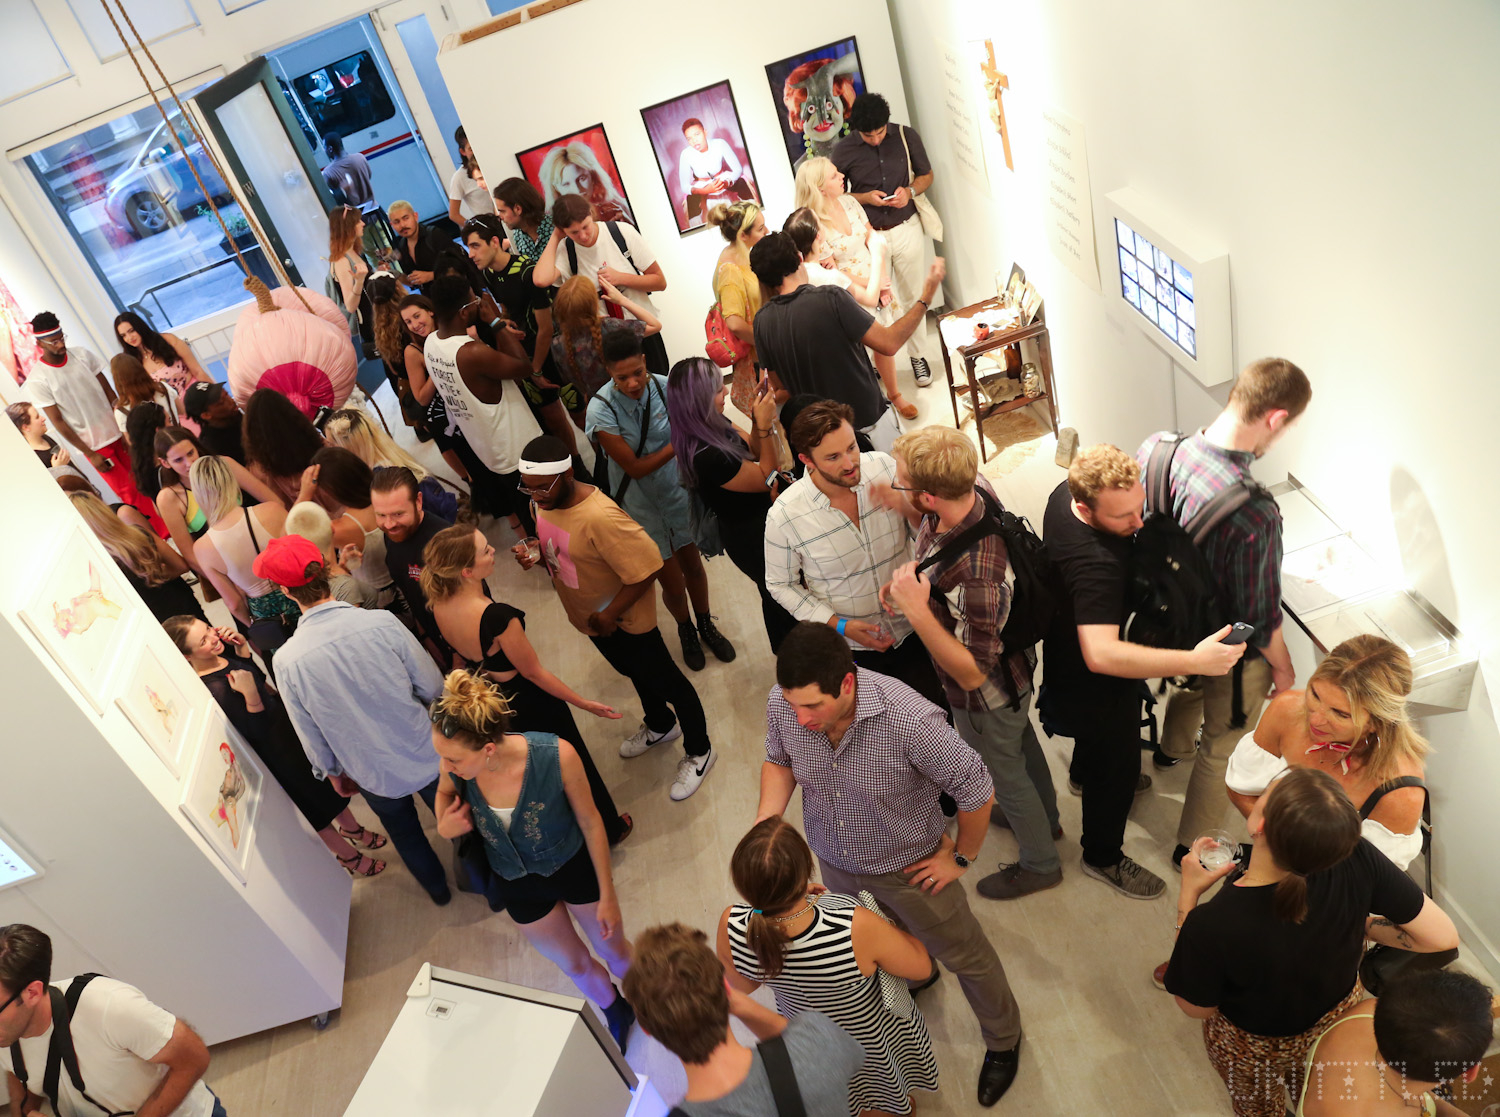 LIFEFORCE-Exhibit-Opening-The-Untitled-Space-002.jpg